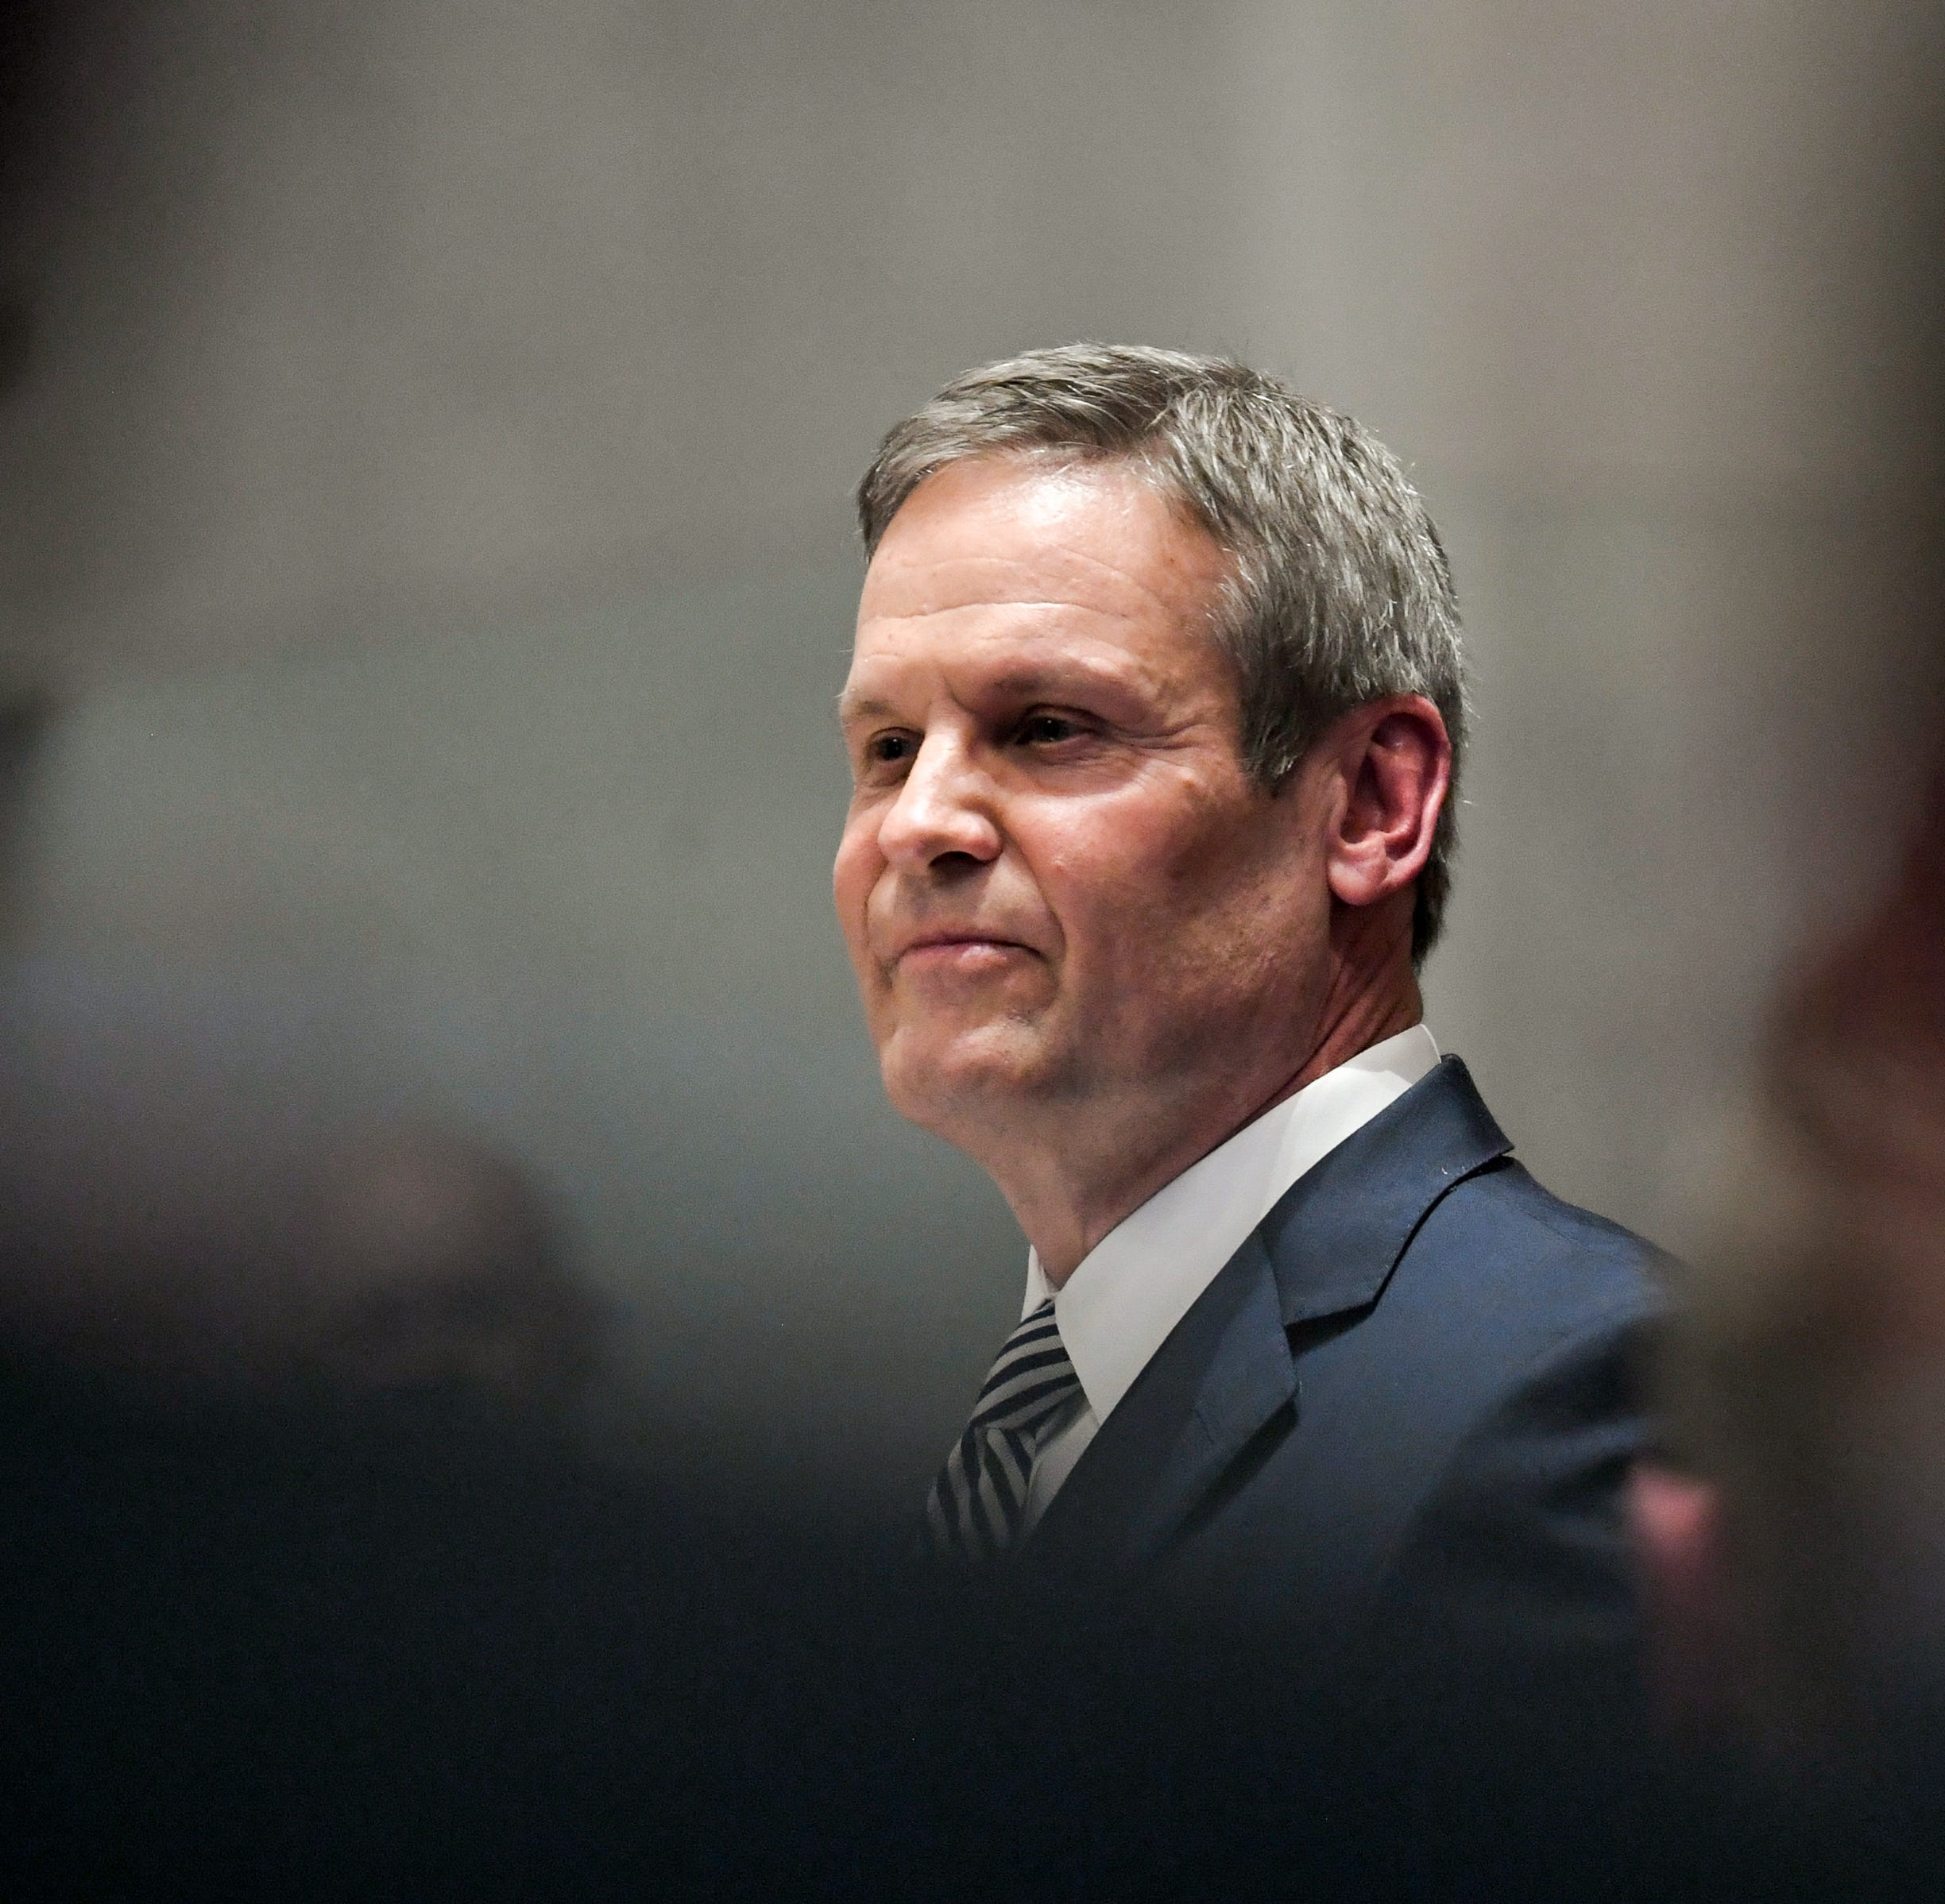 Gov. Bill Lee unsure about climate change; believes state should 'protect the environment'